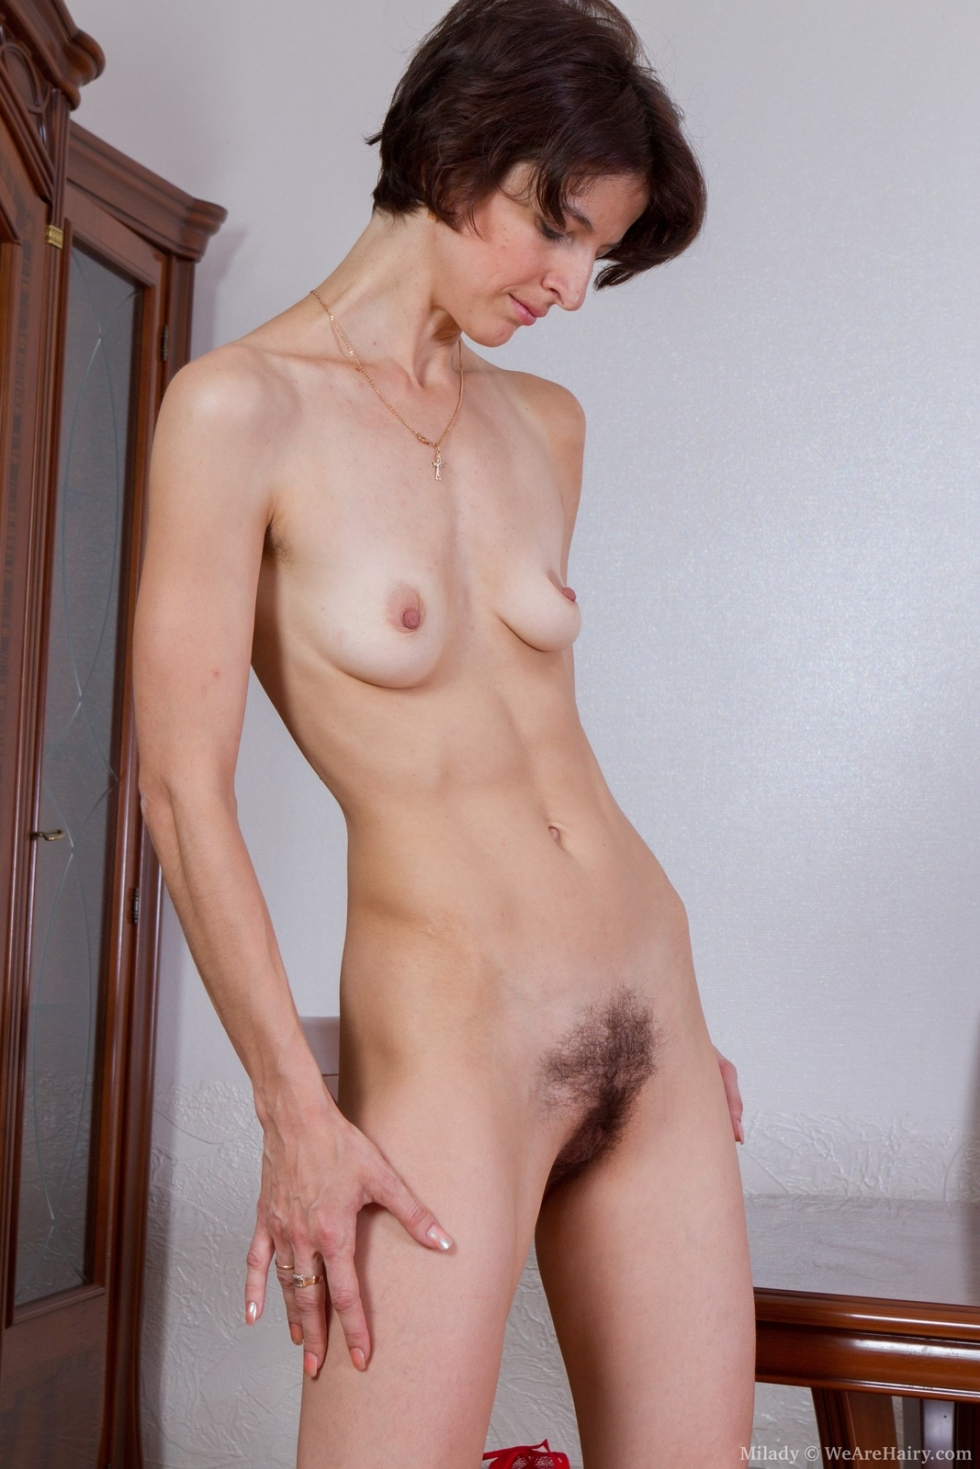 Tall skinny nude mature women with small tits